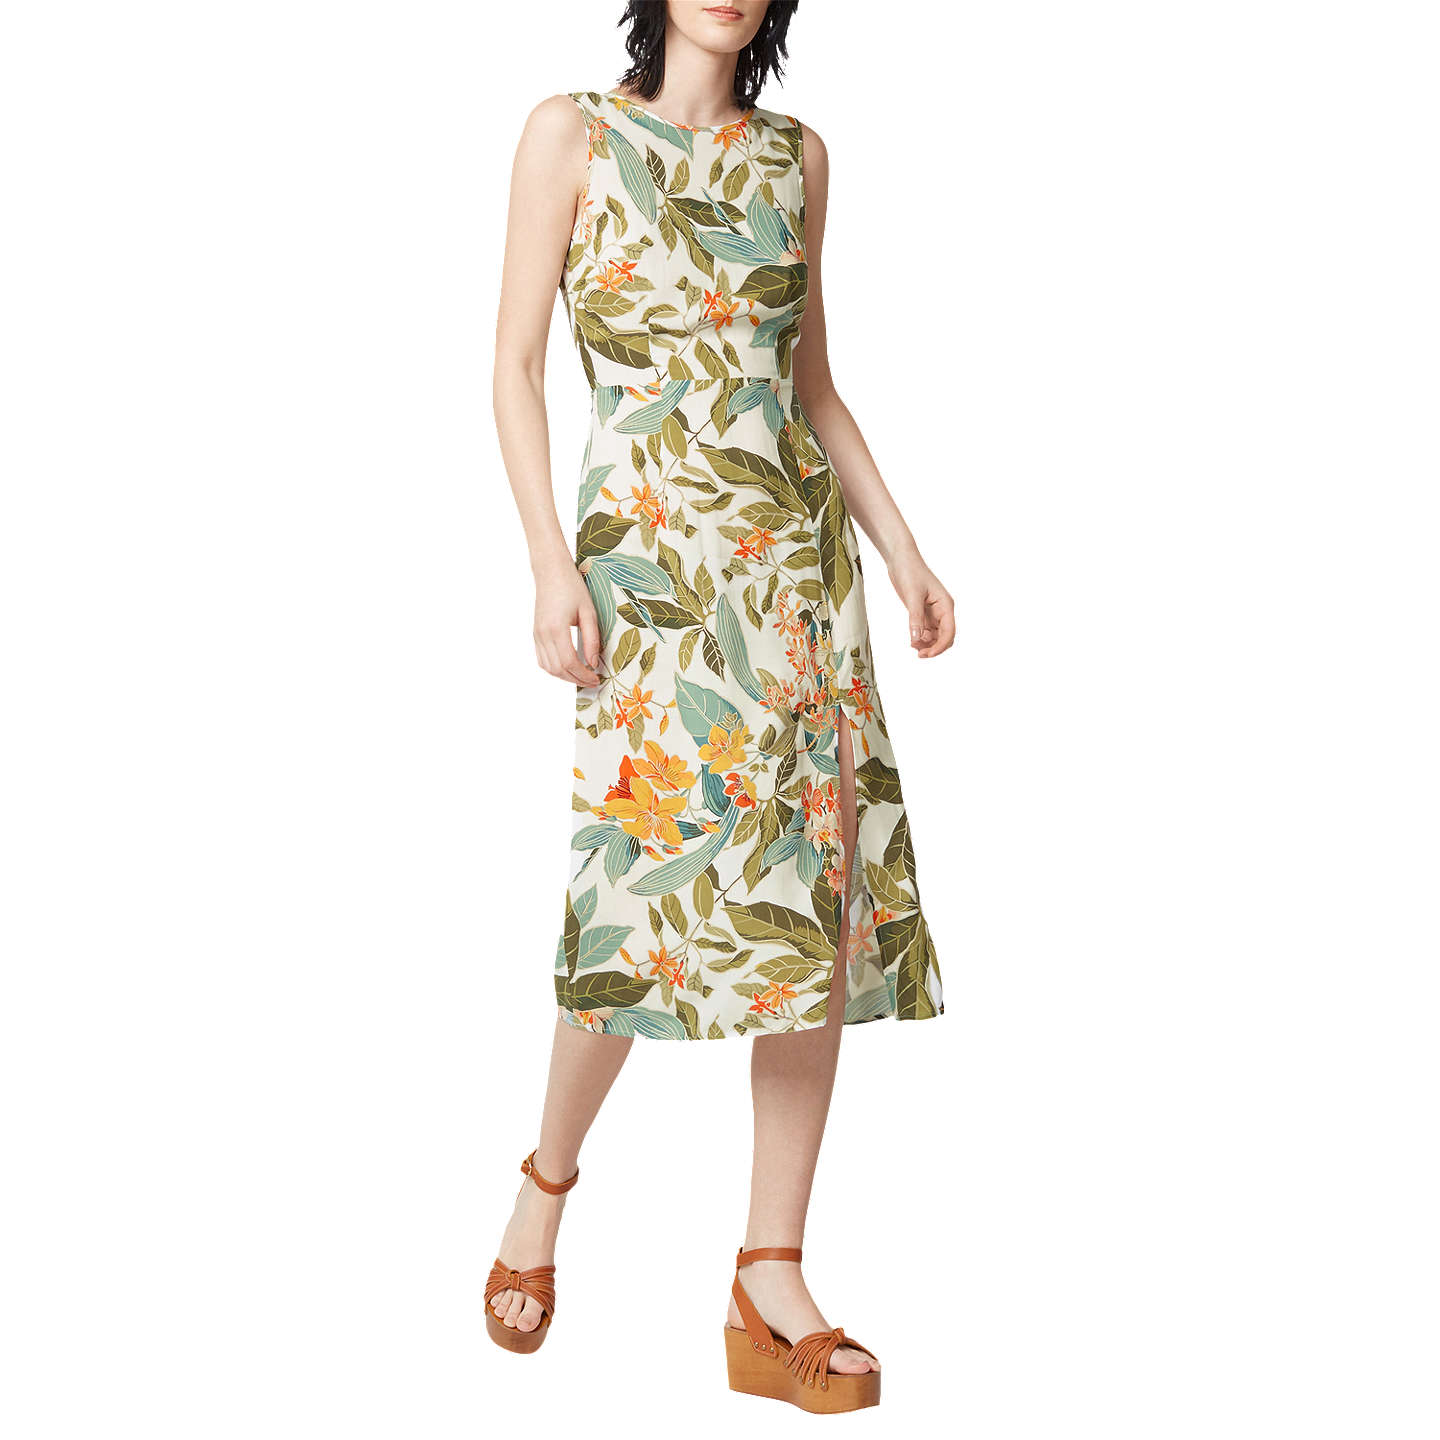 BuyWarehouseTropical Garden Tie Back Dress, Neutral Print, 6 Online at johnlewis.com